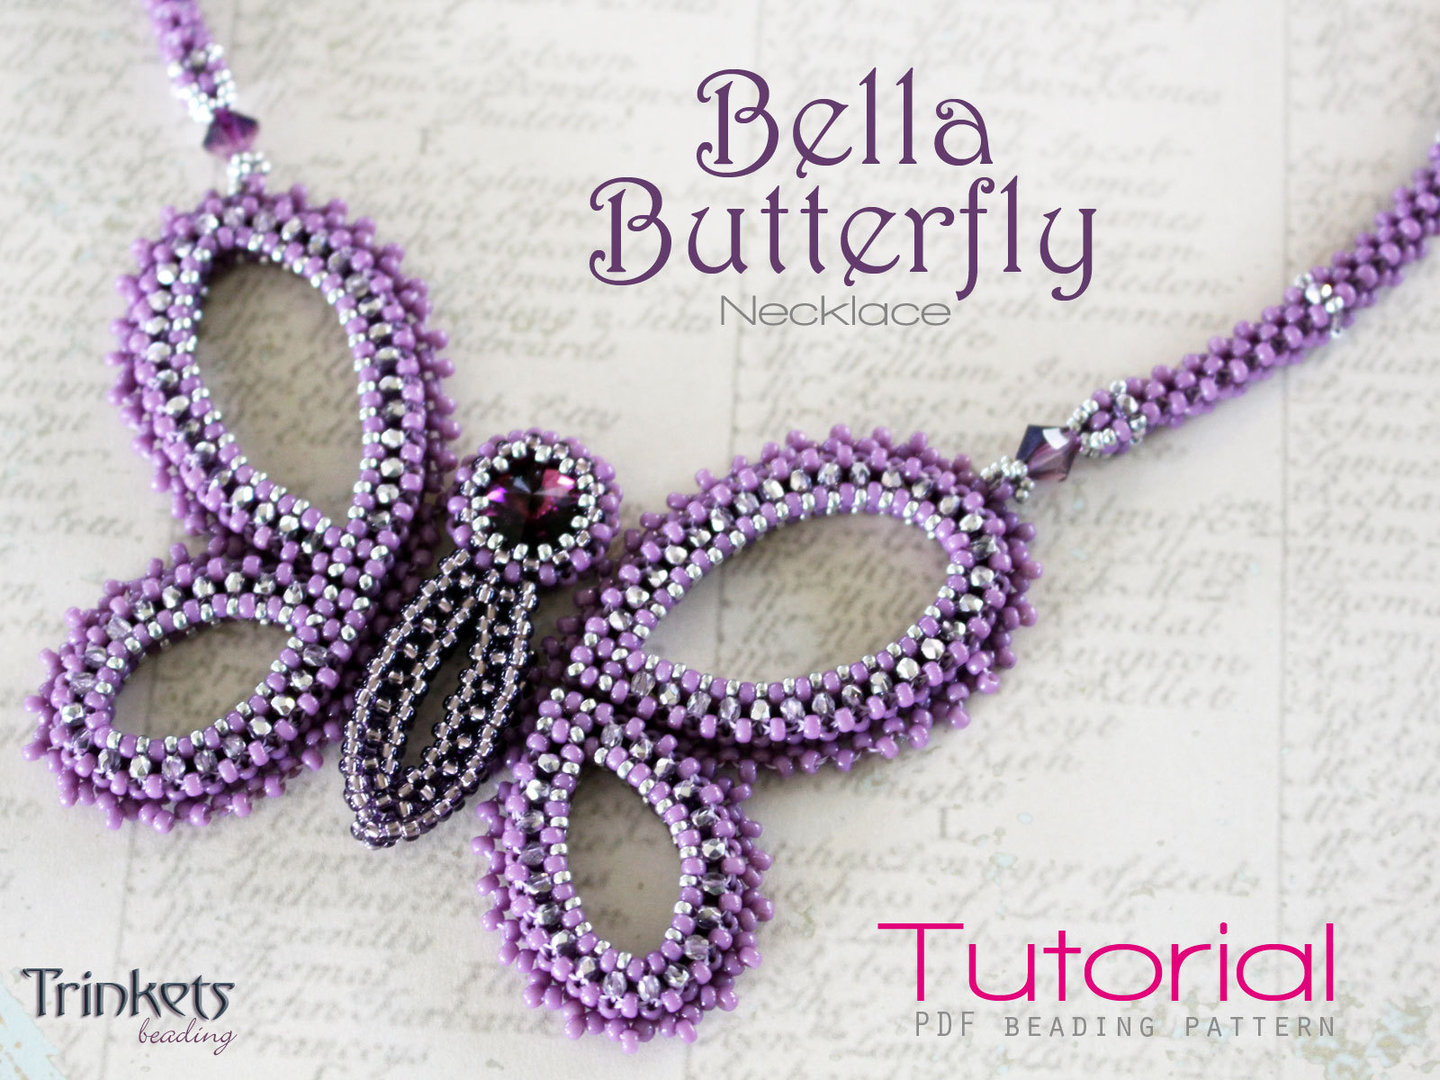 Beading pattern for necklace 'Bella Butterfly' - English